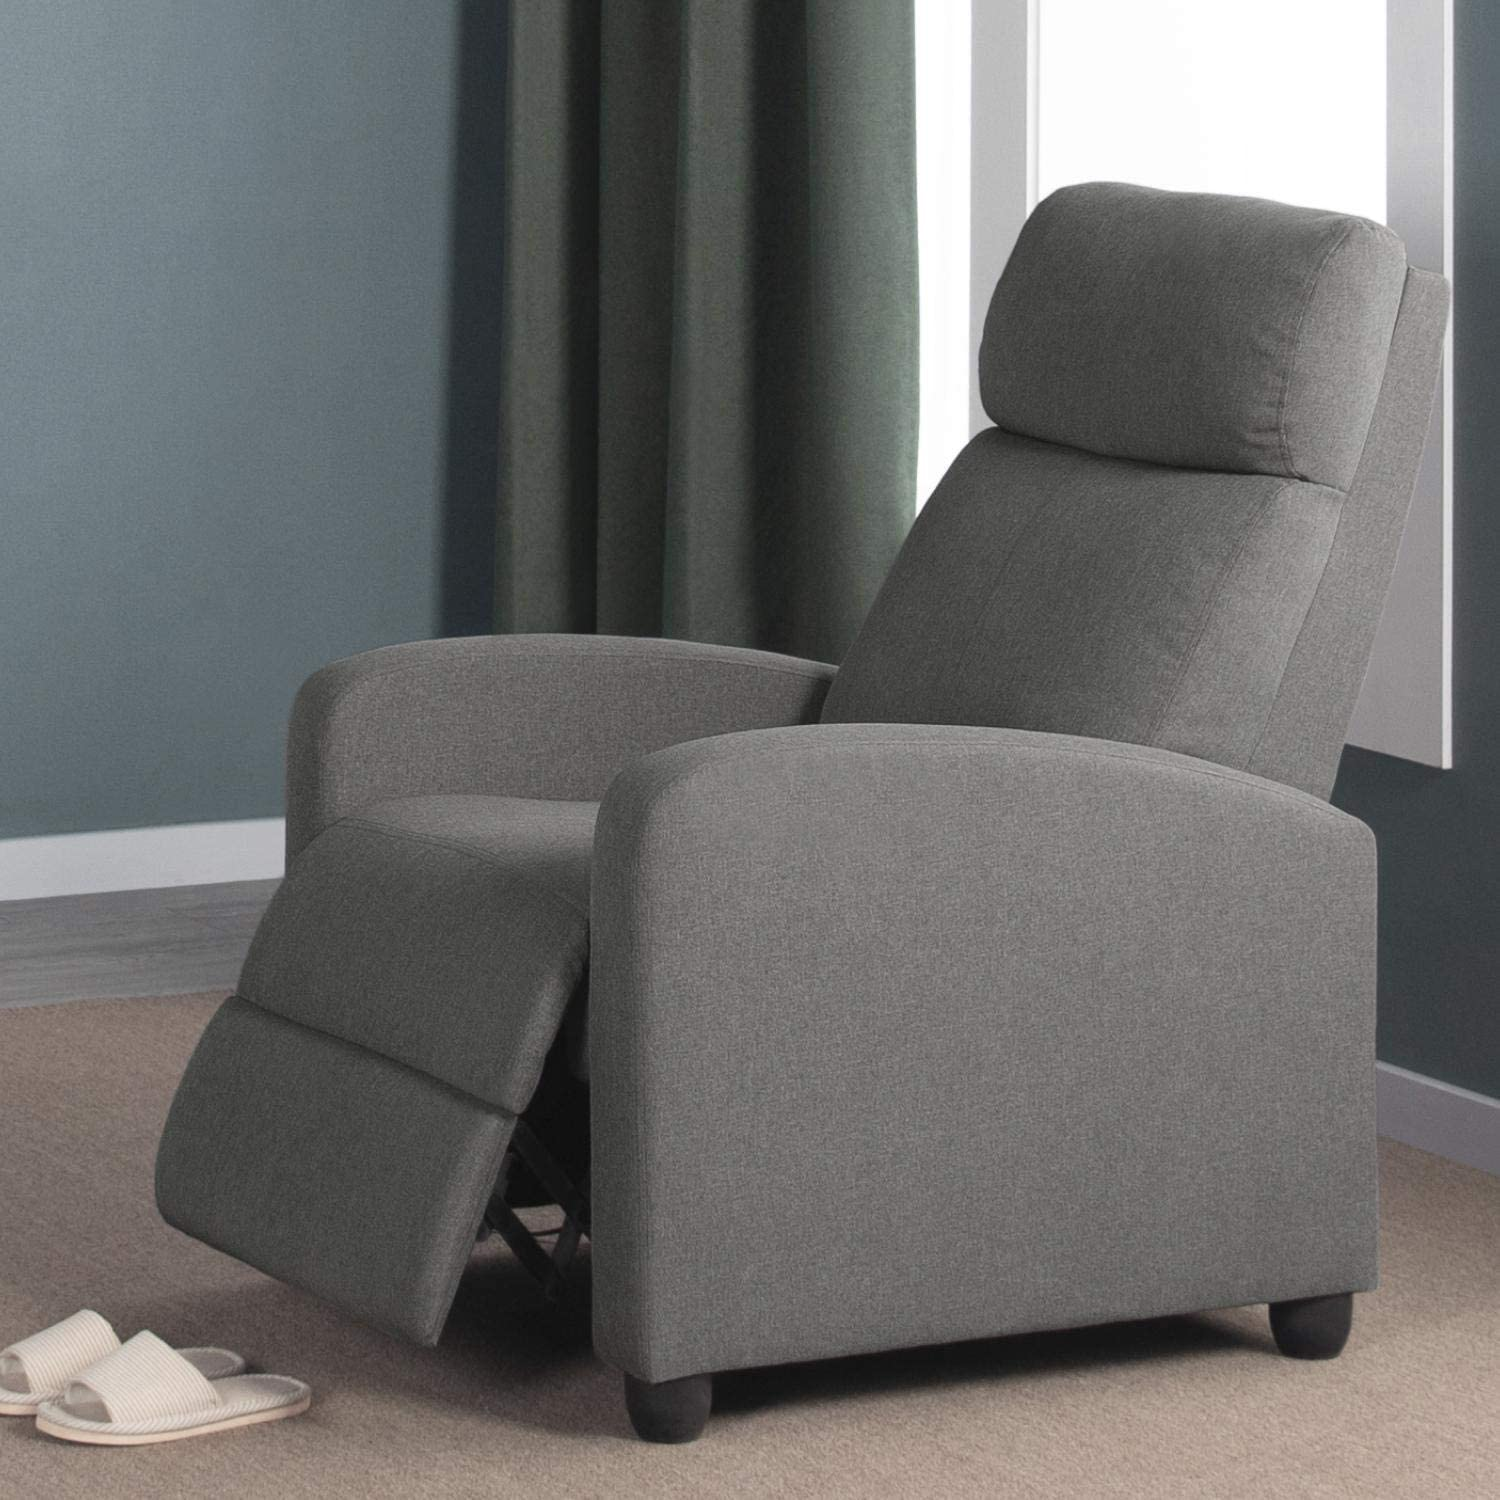 Recliner chair as a lash extension bed